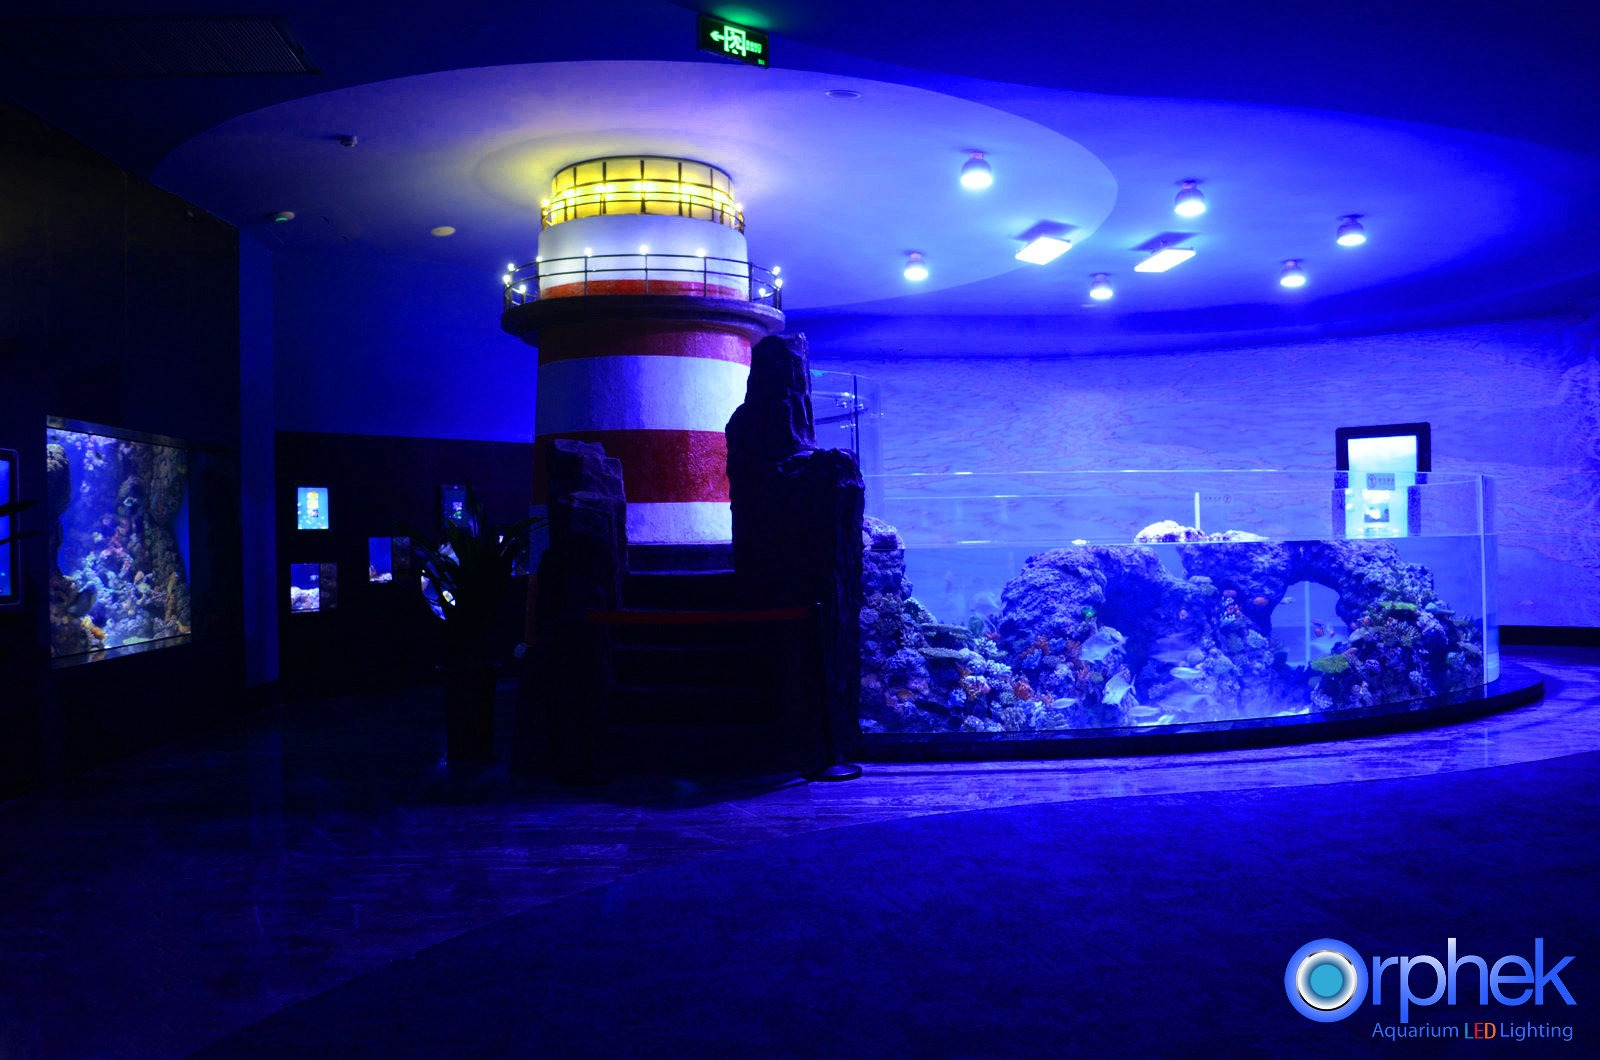 chengdu-public-aquarium-éclairage LED-tropical -sea-zone-15